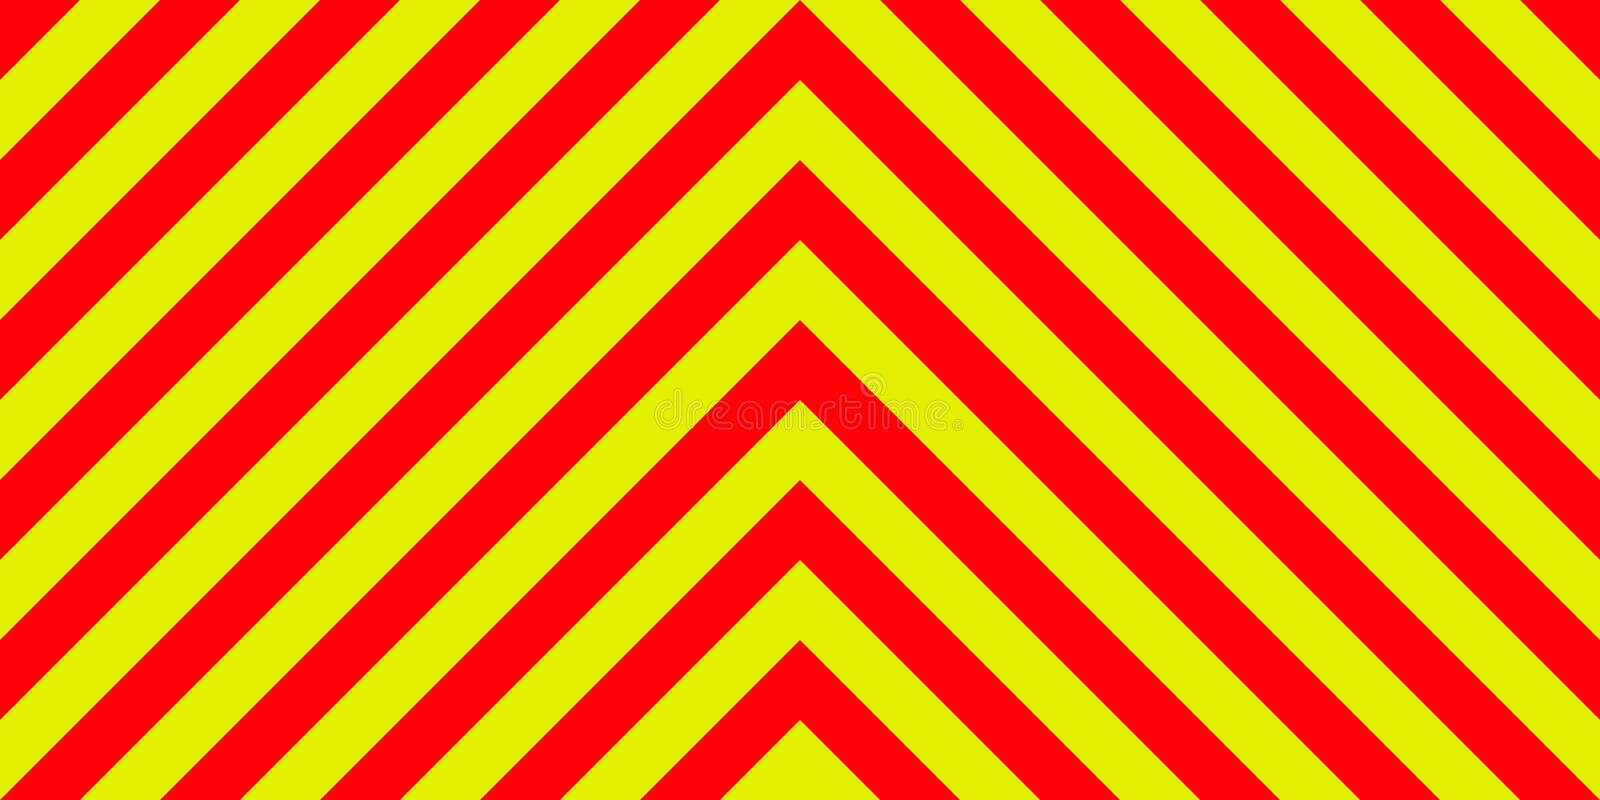 Ambulance emergency background sign yellow and red stripes diagonally, ambulance emergency diagonal stripes. Ambulance emergency sign background yellow and red vector illustration